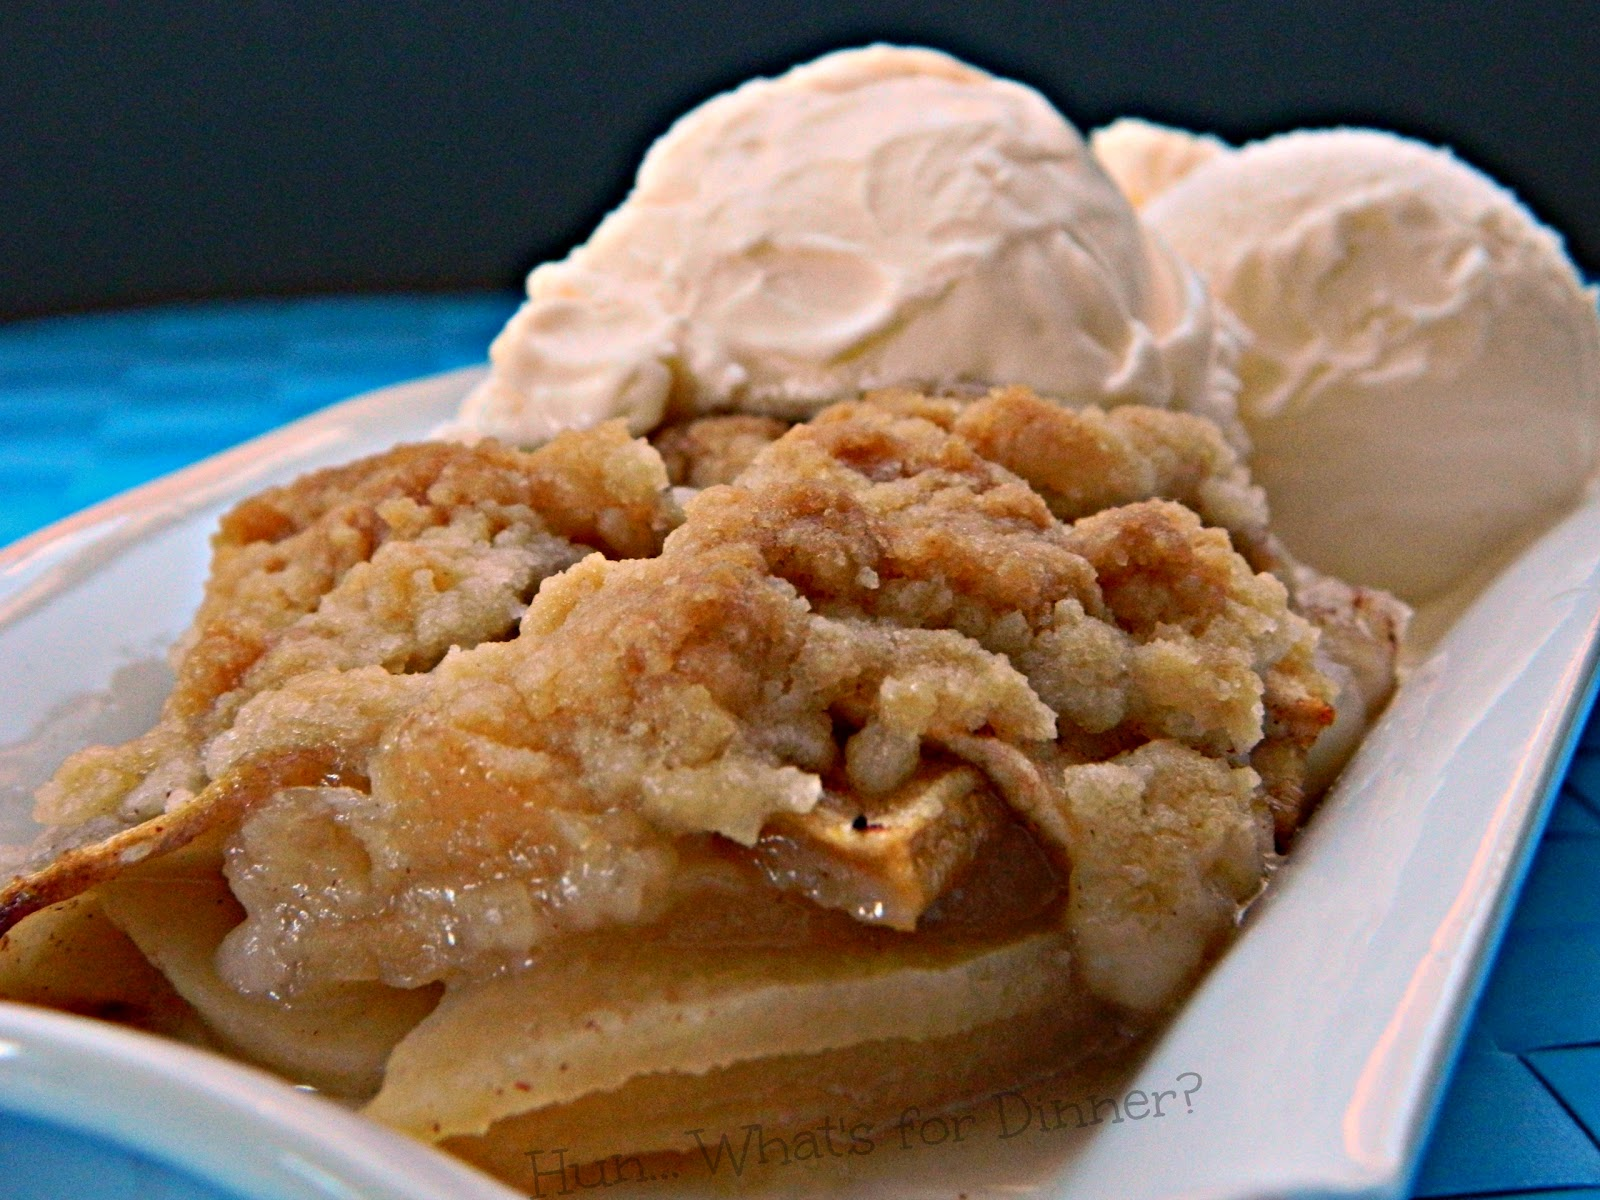 Hun... What's for Dinner?: Warm, spiced apples are baked until tender, beneath a crisp sweet crust, in this Simple Apple Crisp.